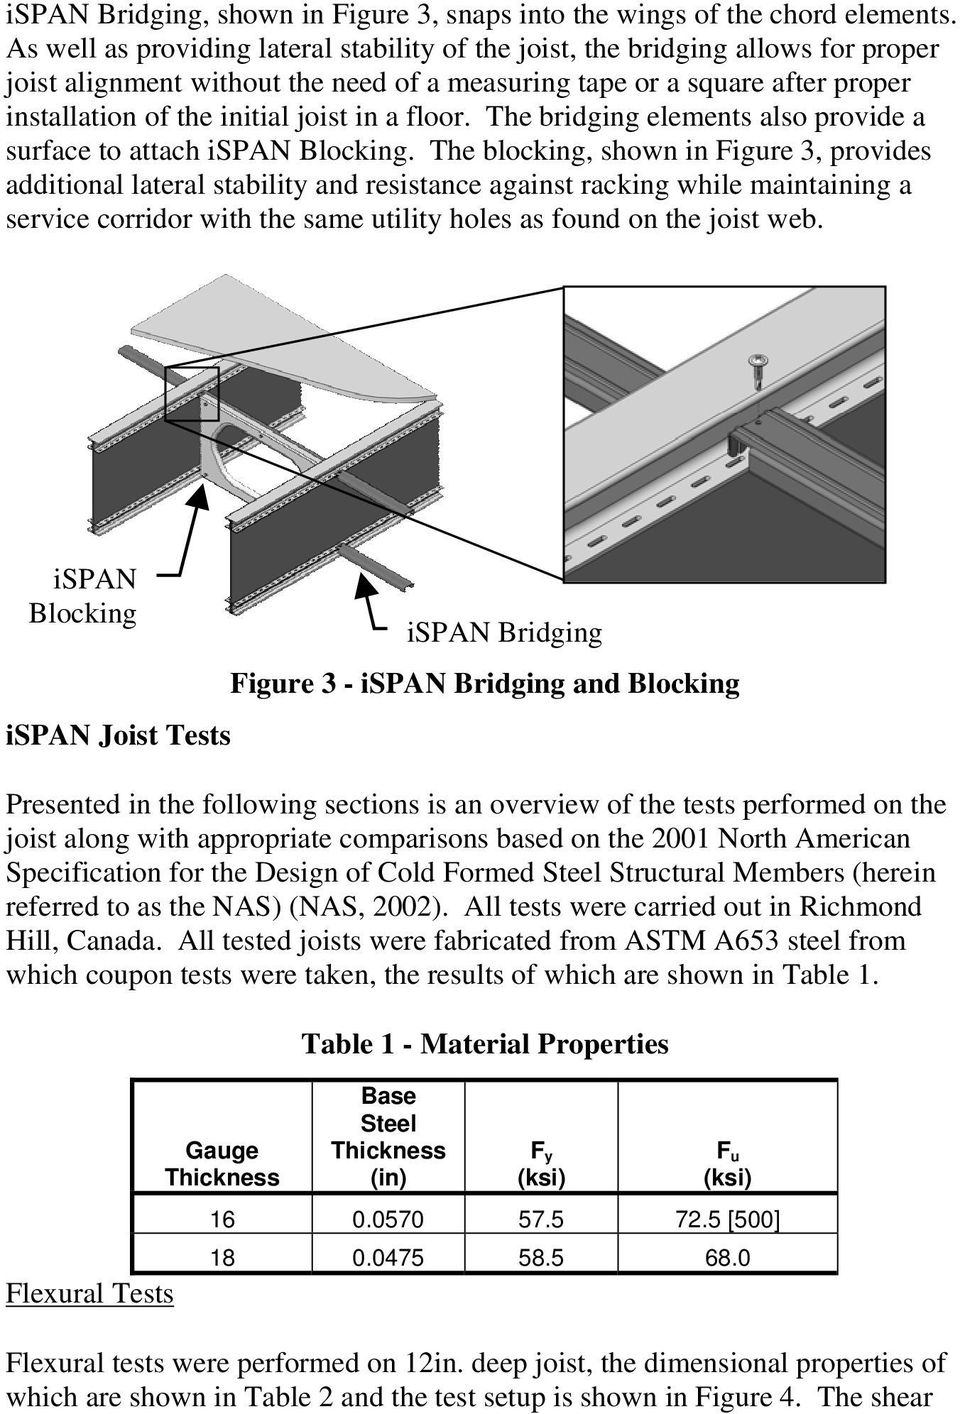 a floor. The bridging elements also provide a surface to attach ispan Blocking.